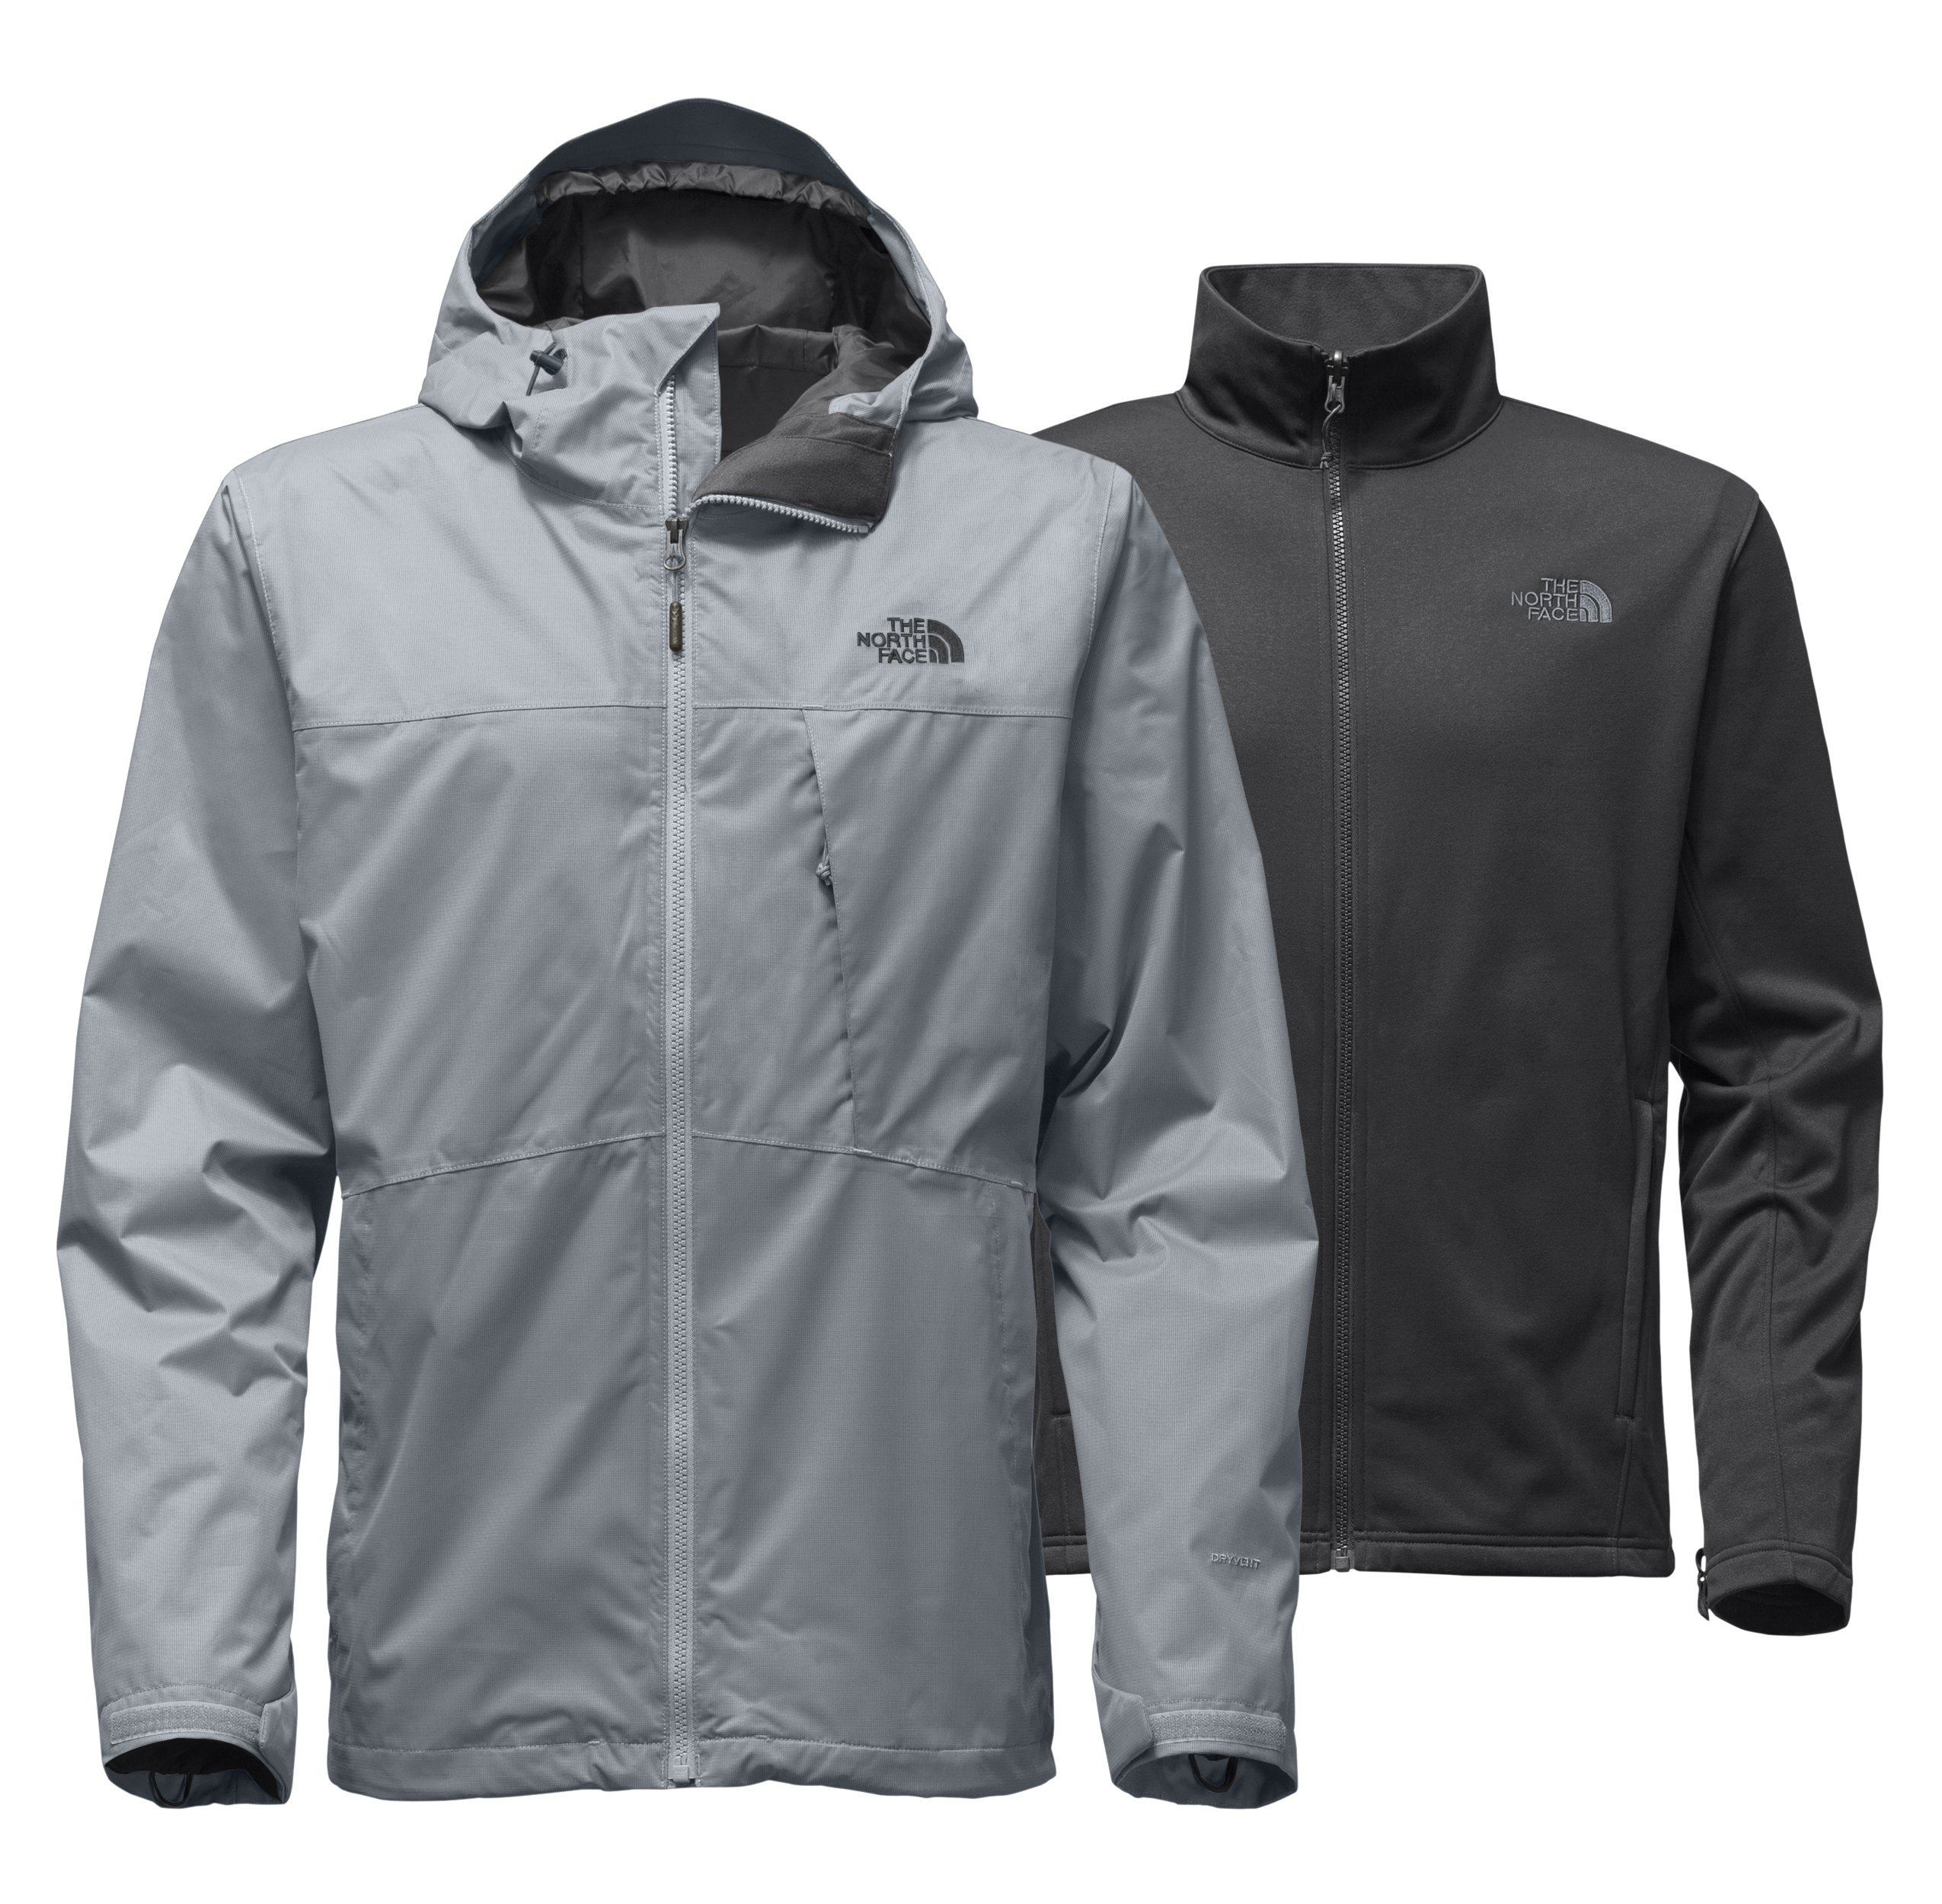 The North Face Mens Arrowood Triclimate Jacket - Mid Grey - M by The North Face